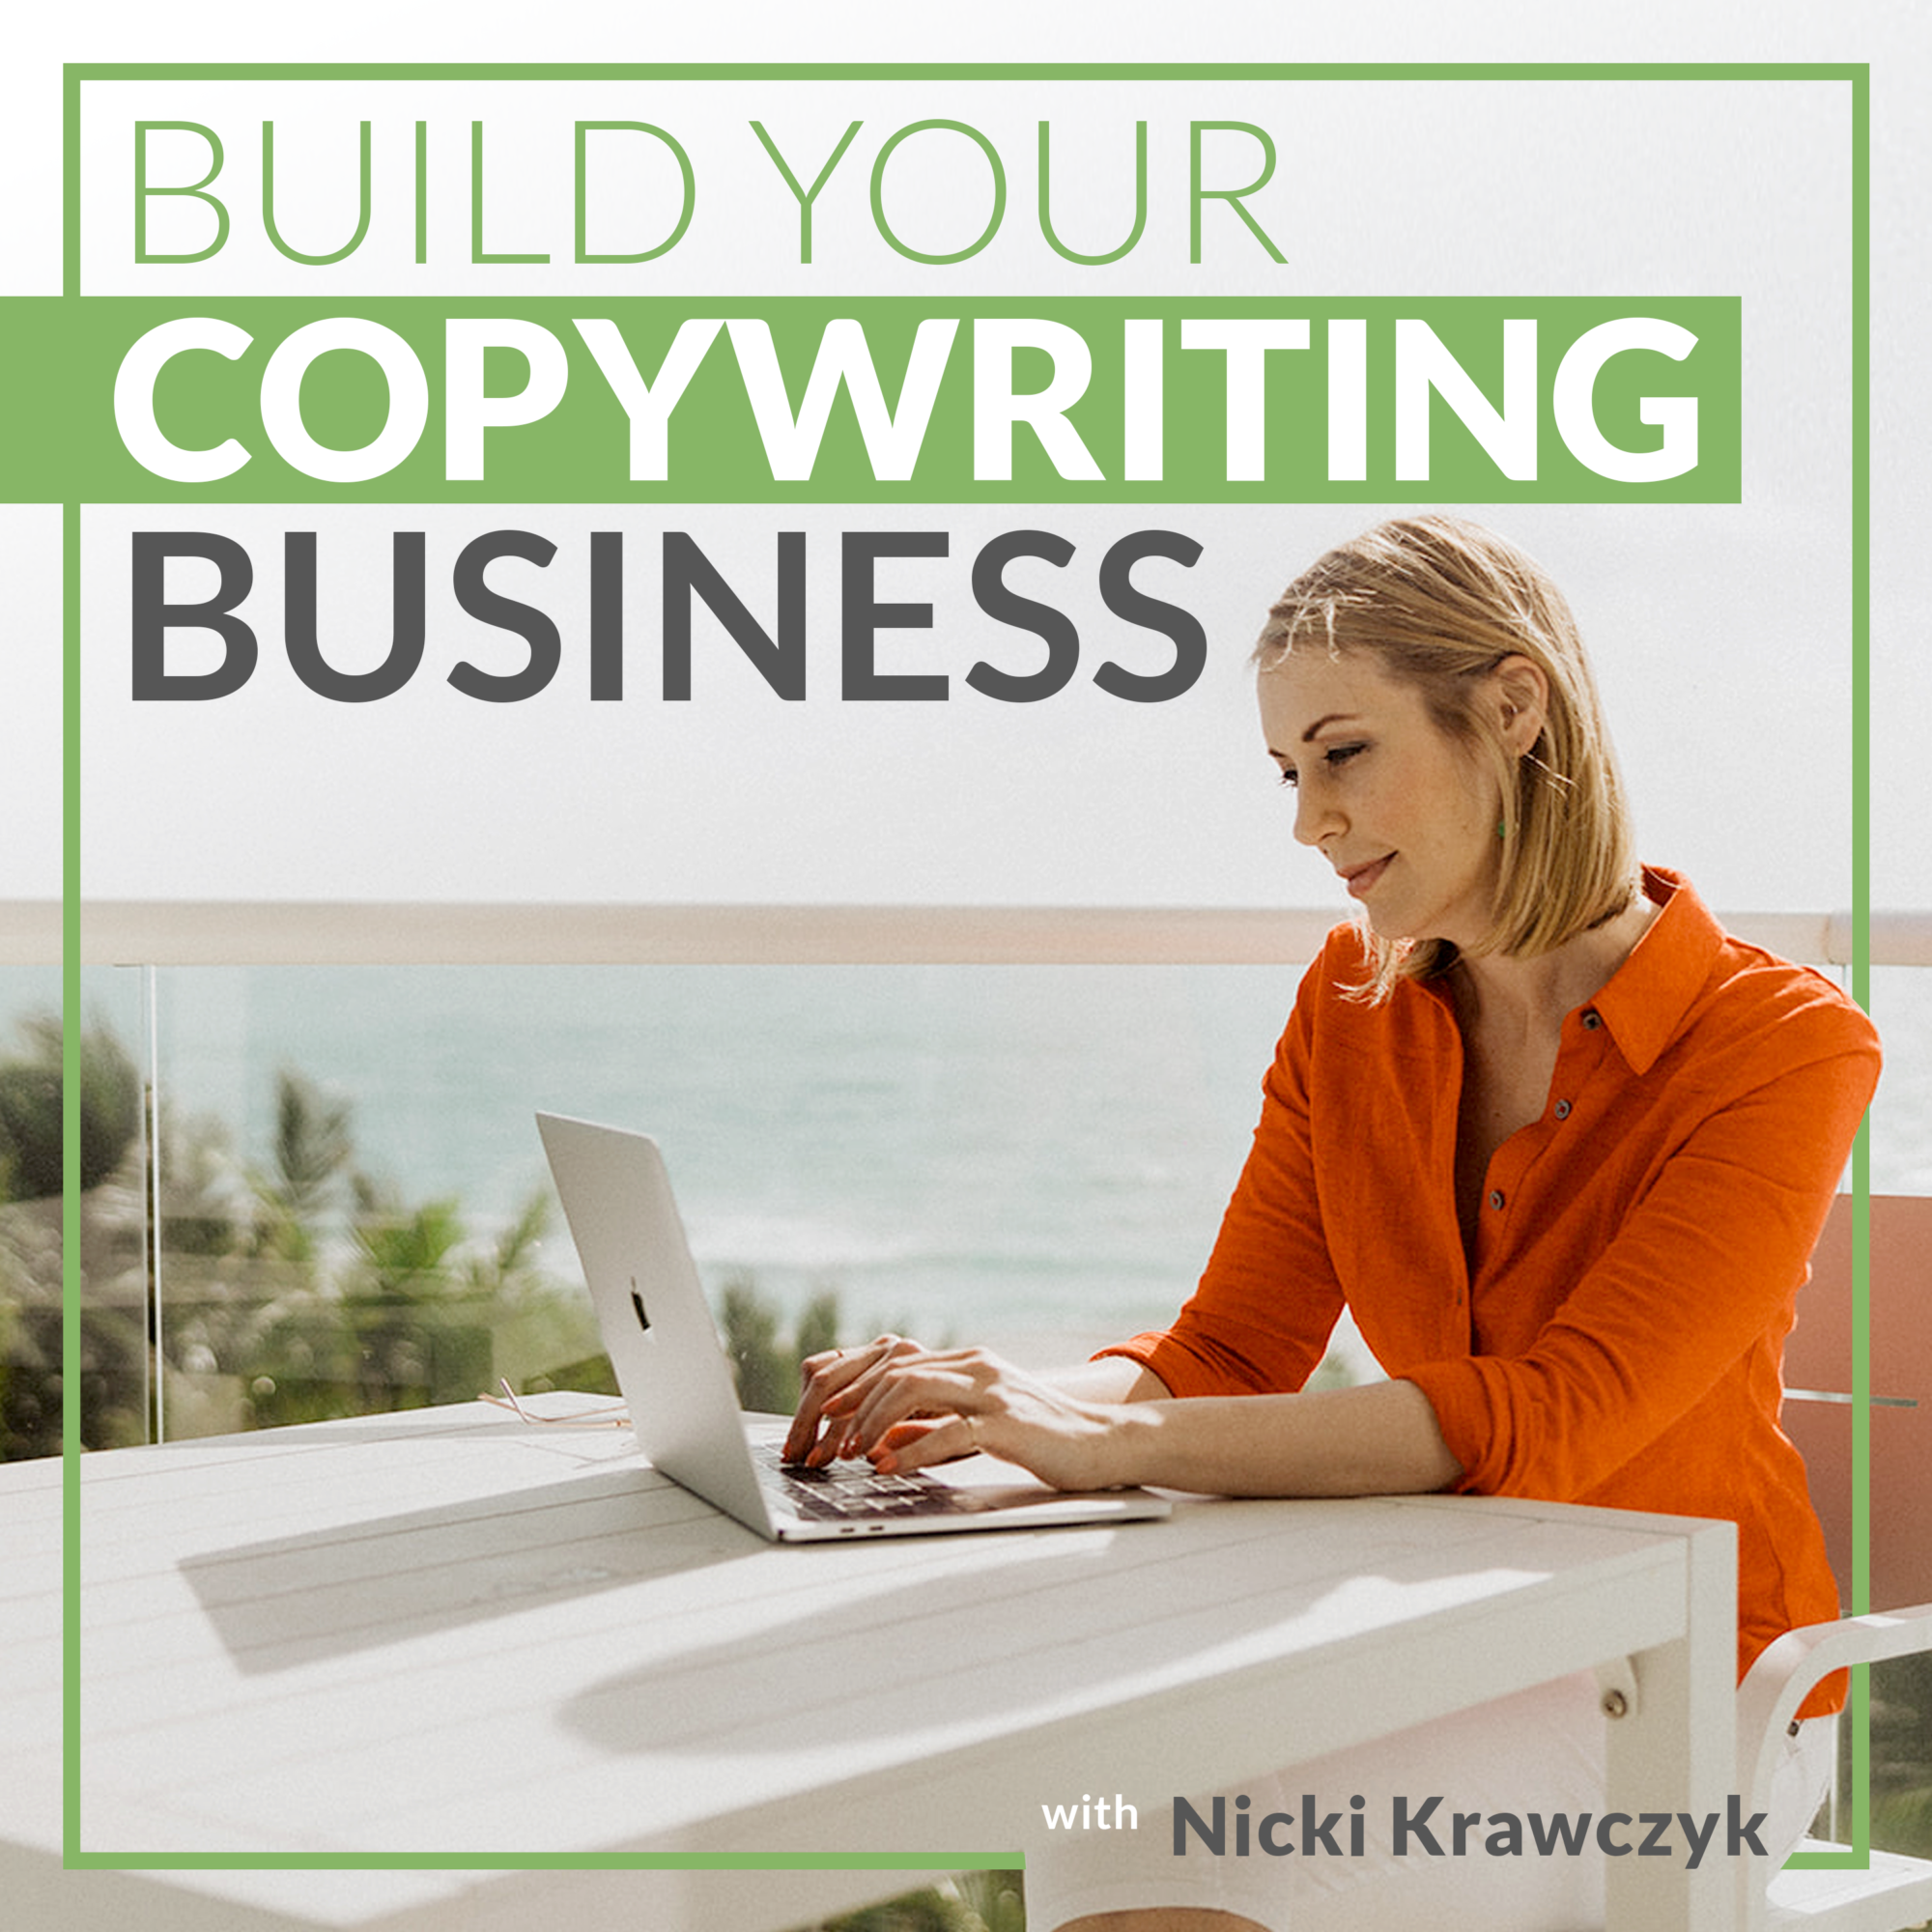 Nicki Krawczyk, founder of Filthy Rich Writer and the Build Your Copywriting Business podcast